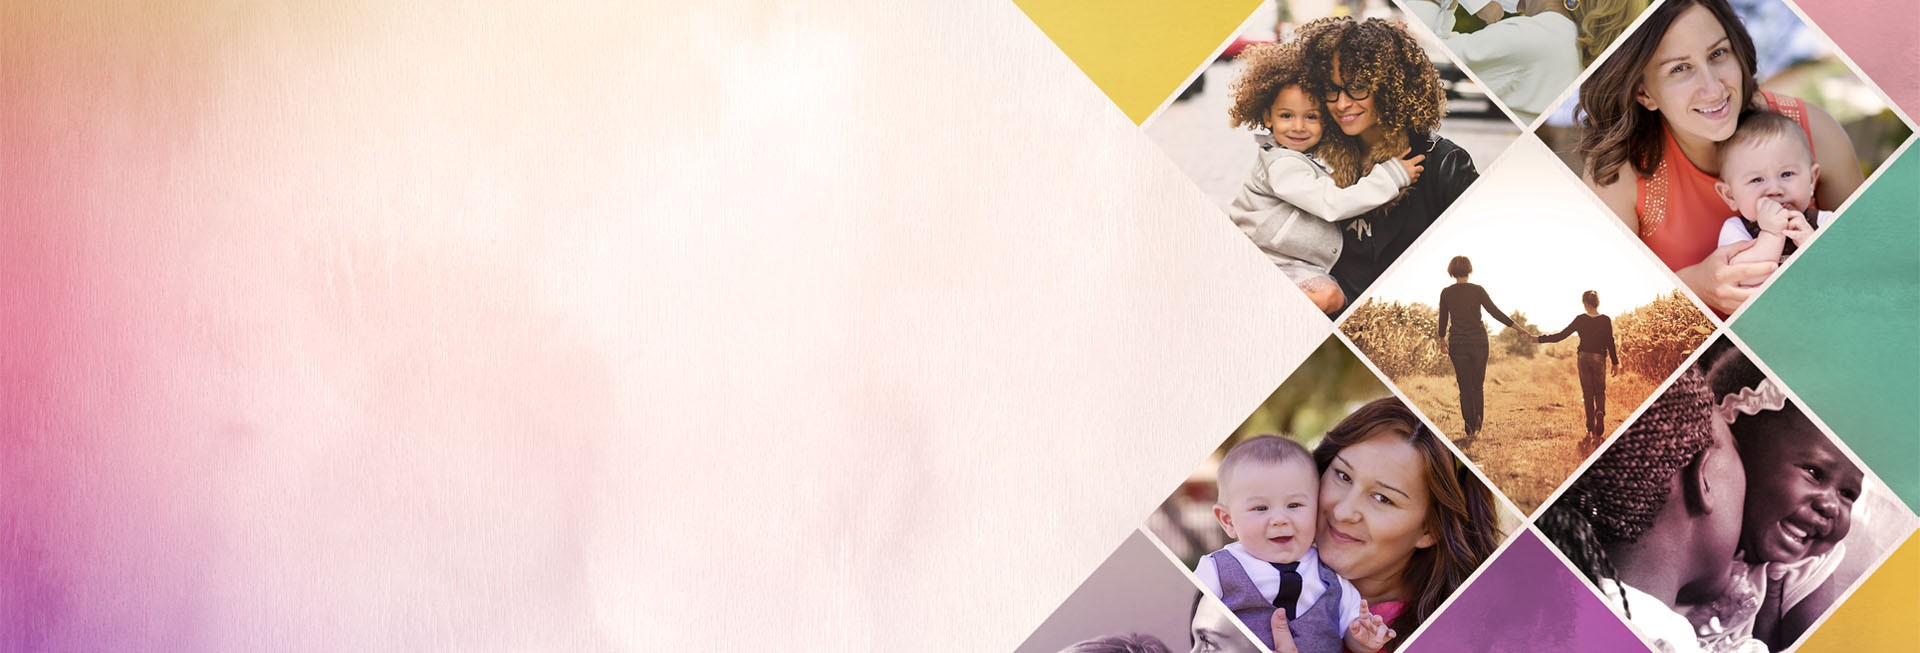 Celebrating Mother's Day Church Website Banner